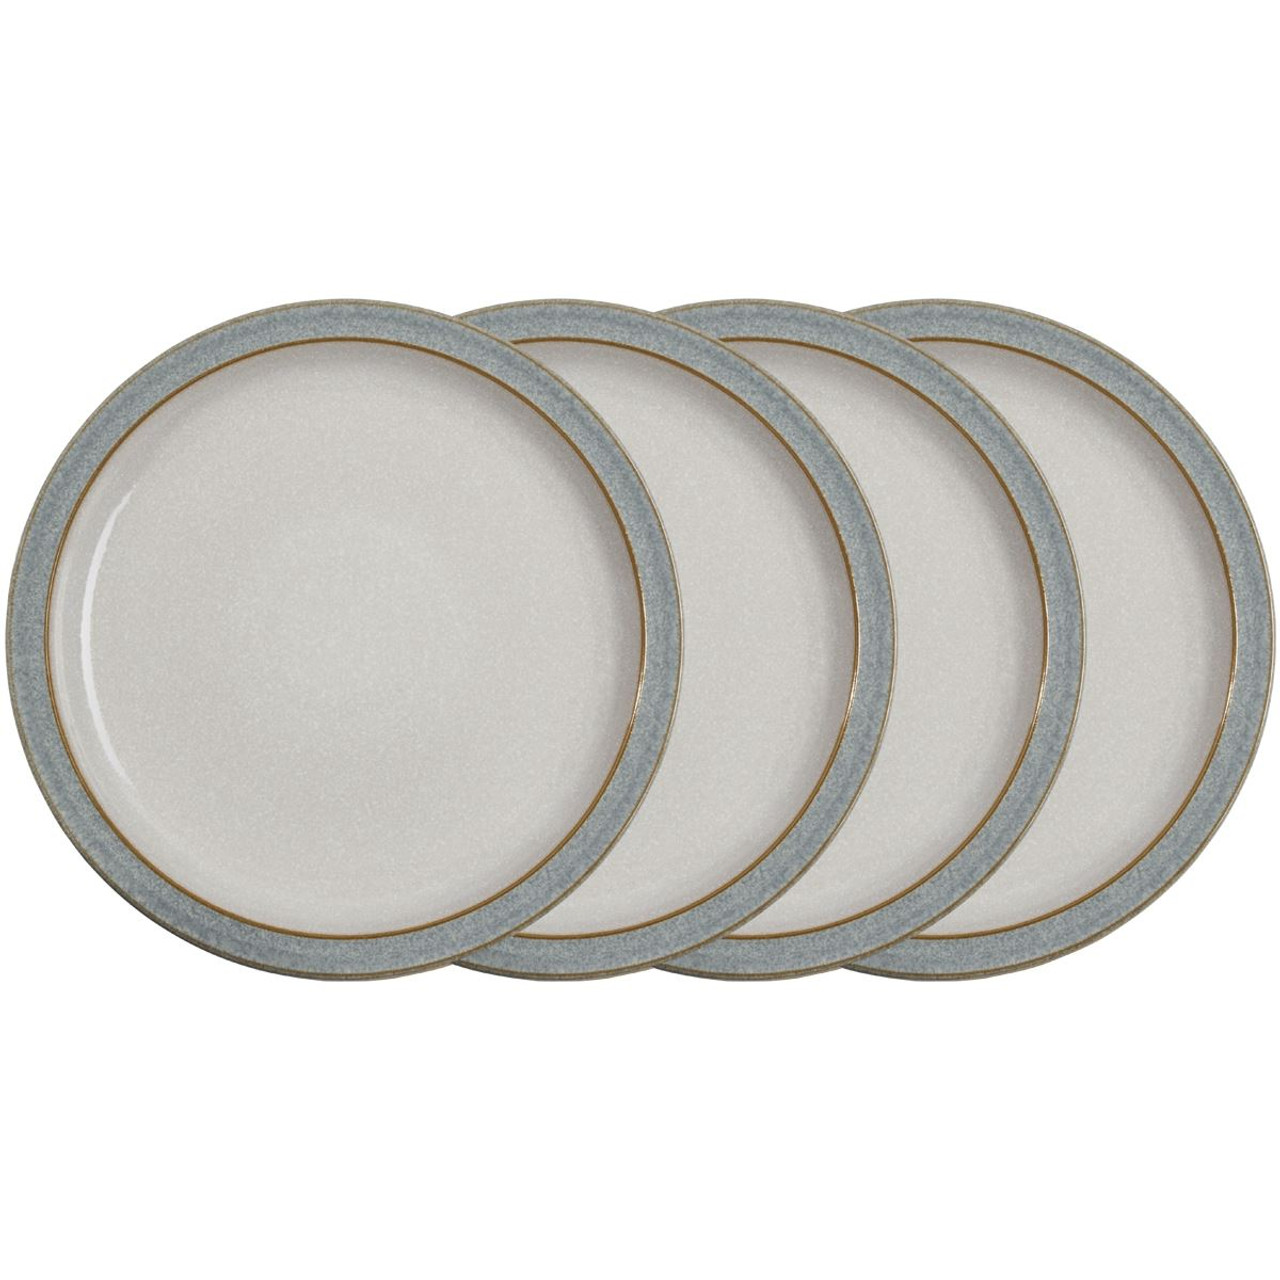 Denby Elements Light Grey 4 Piece Dinner Plate Set